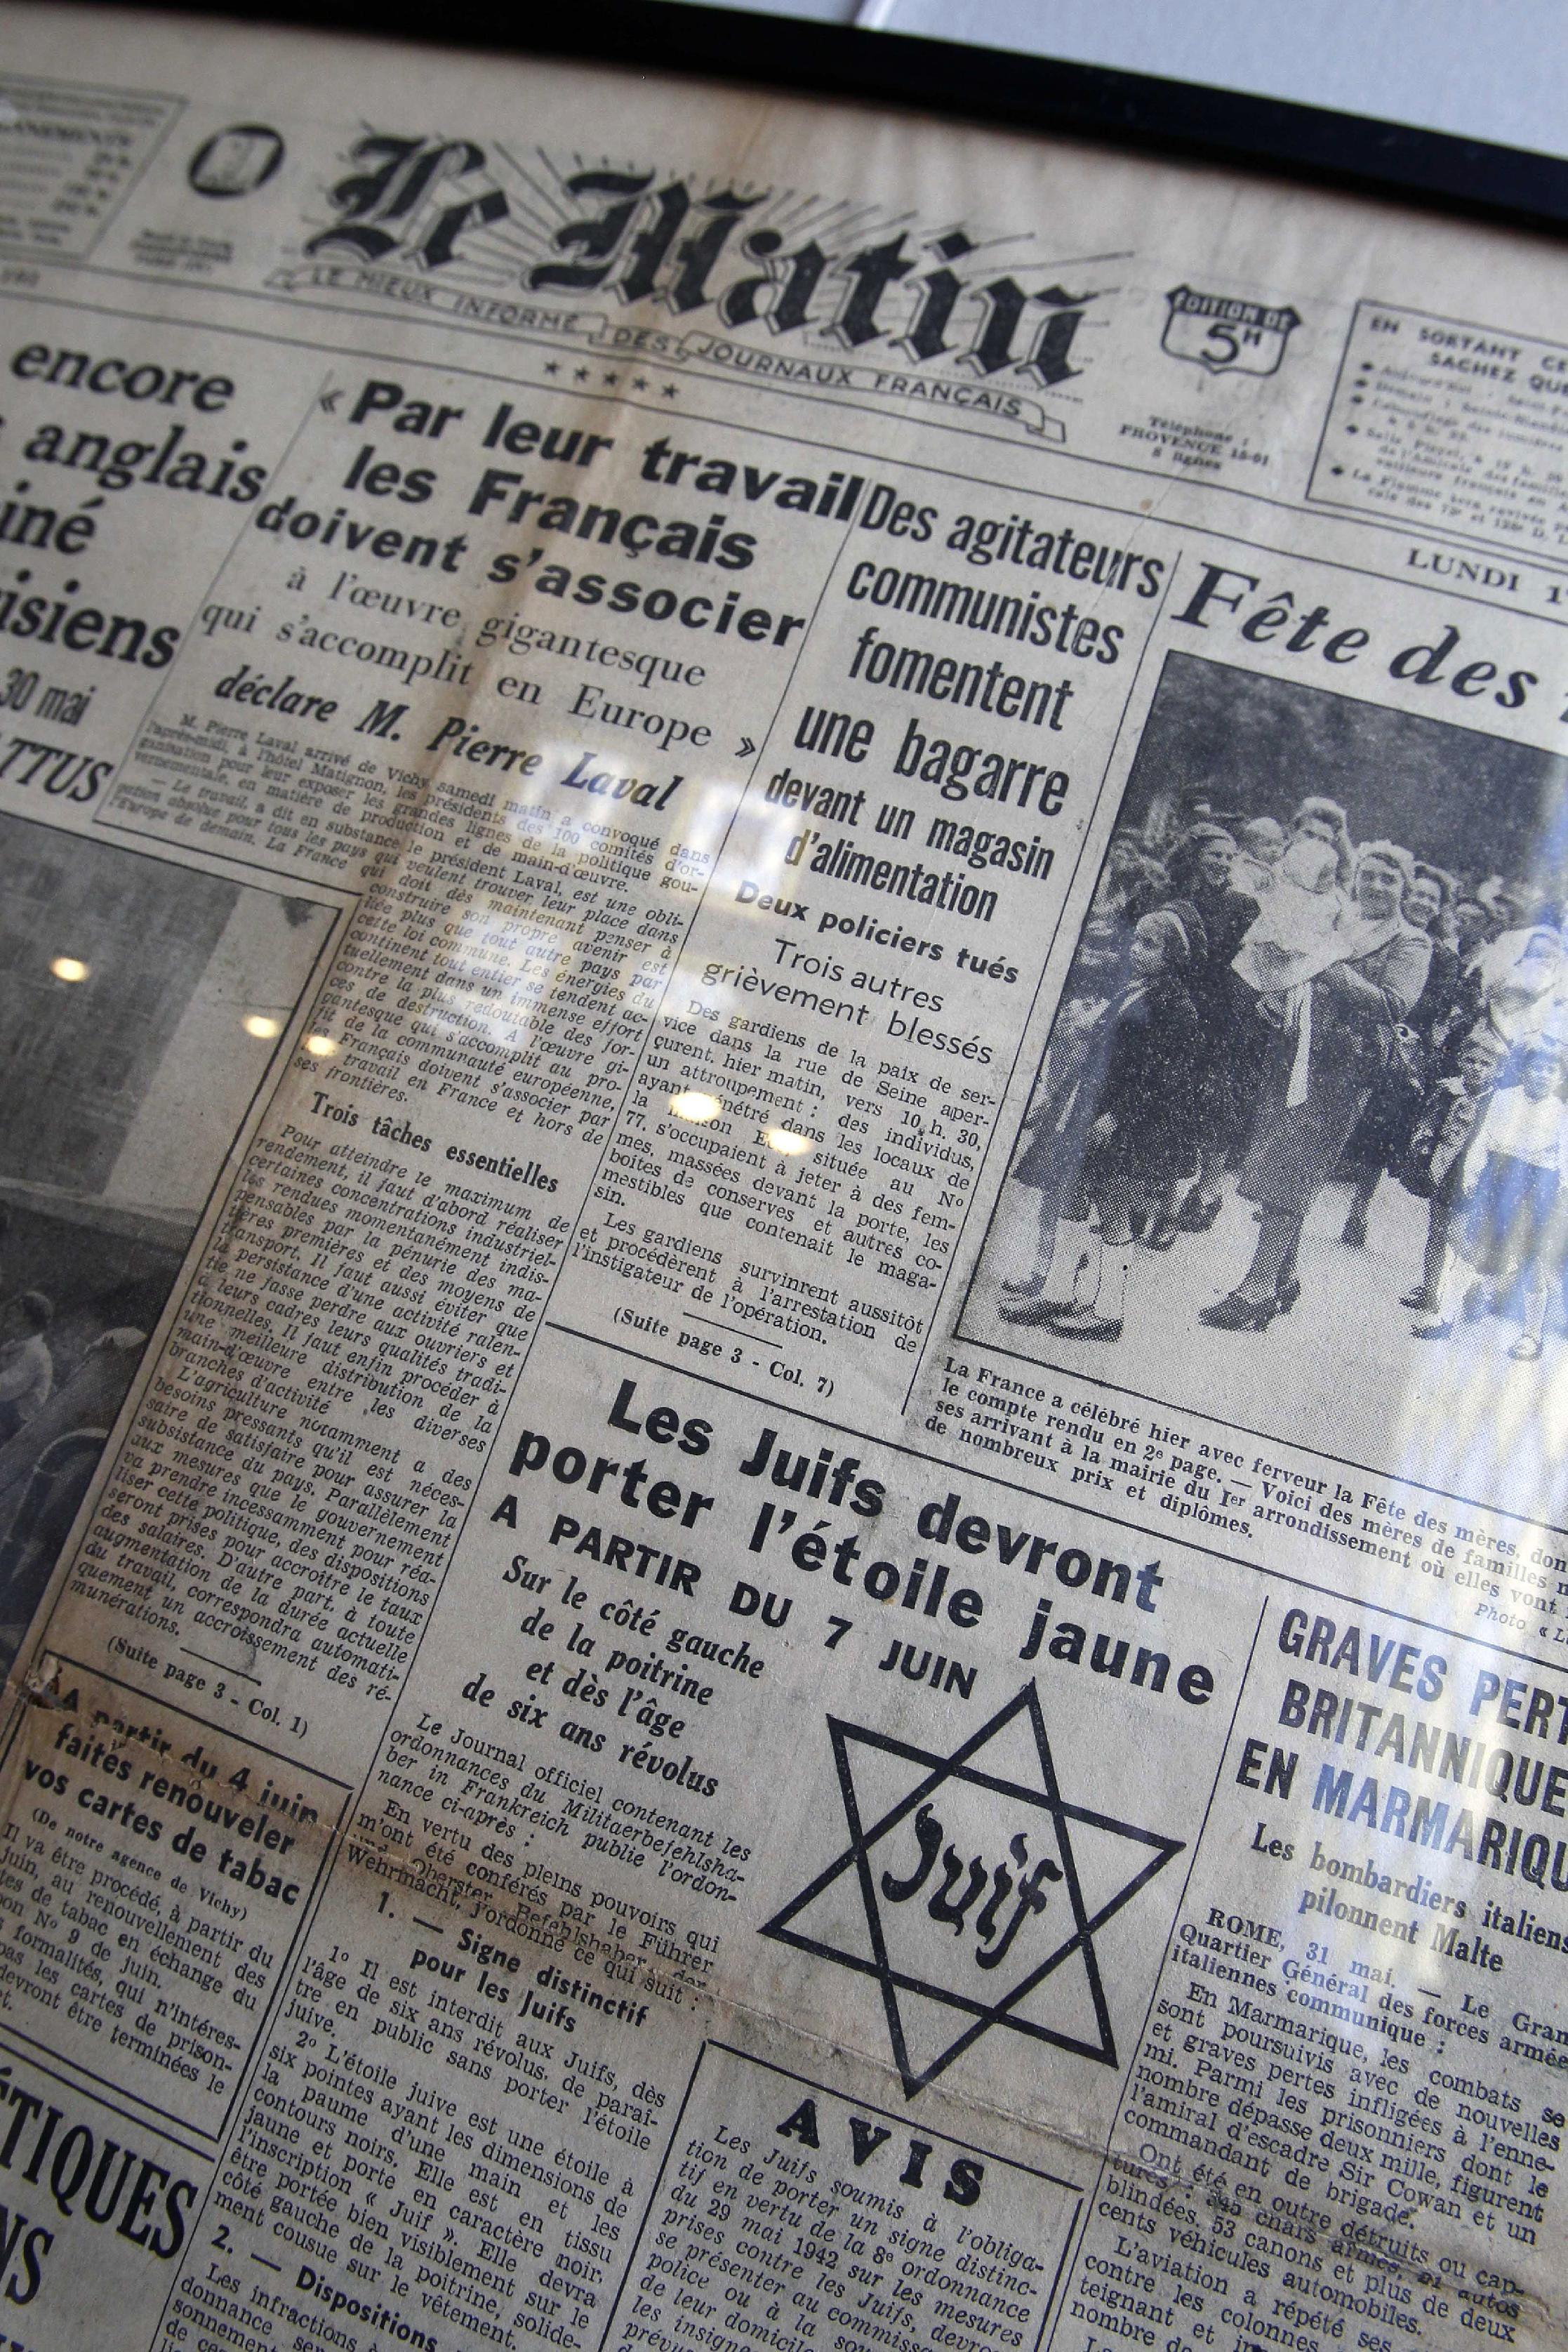 "In this photo taken Monday, July 16, 2012 shows the front page of daily newspaper Le Matin reading ""Jews must wear the yellow star starting July 7"" coming from the Archives of Paris Police Prefecture is presented for an exhibition of French archives on Shoah in Paris. The chilling archives of the biggest World War II deportation of French Jews are being opened up to public view for the first time. It coincides with the 70th anniversary of the Vel' d'Hiv roundup by Paris police of some 13,000 Jews over two days who were then sent to Auschwitz death camp. Photos, signatures and records of personal possessions from many of the victims are on display at a Paris district town hall. (AP Photo/Remy de la Mauviniere)"